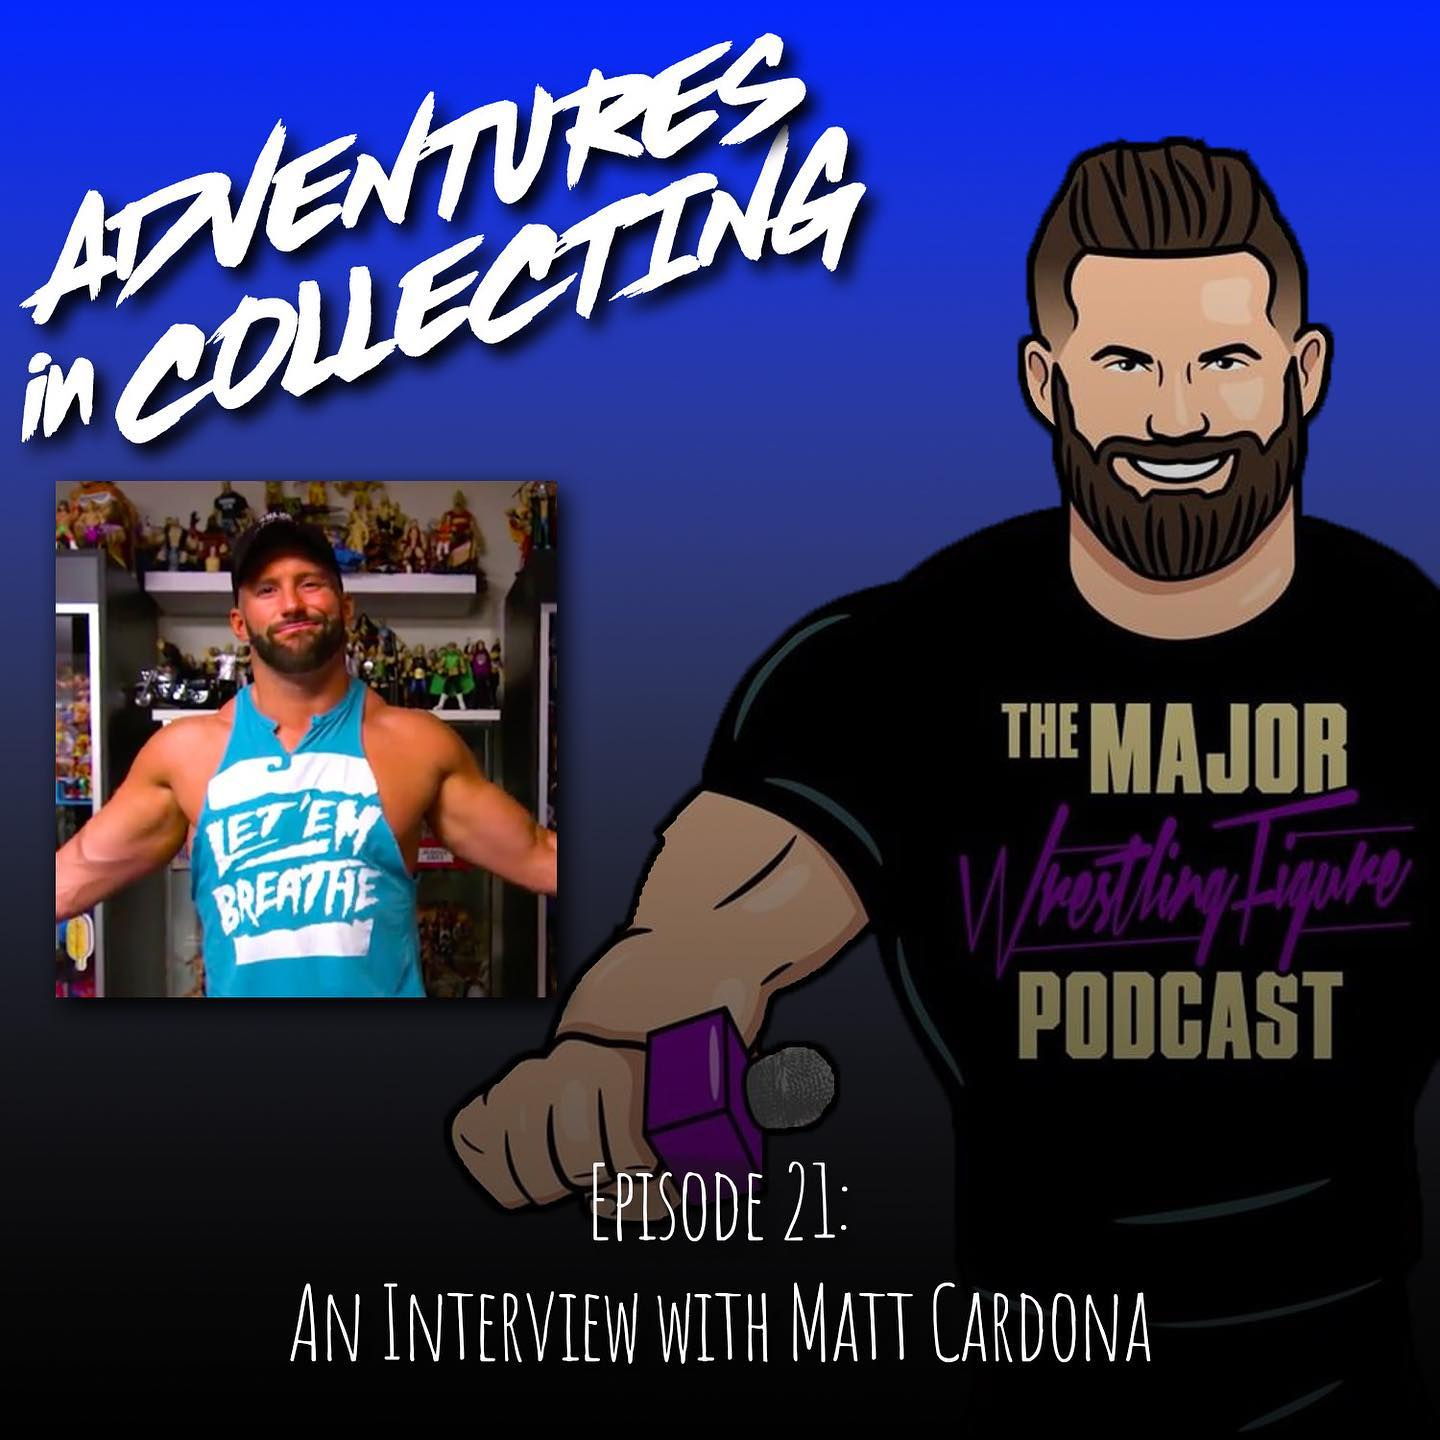 An Interview with the Major Wrestling Figure Podcast's Matt Cardona – Adventures in Collecting